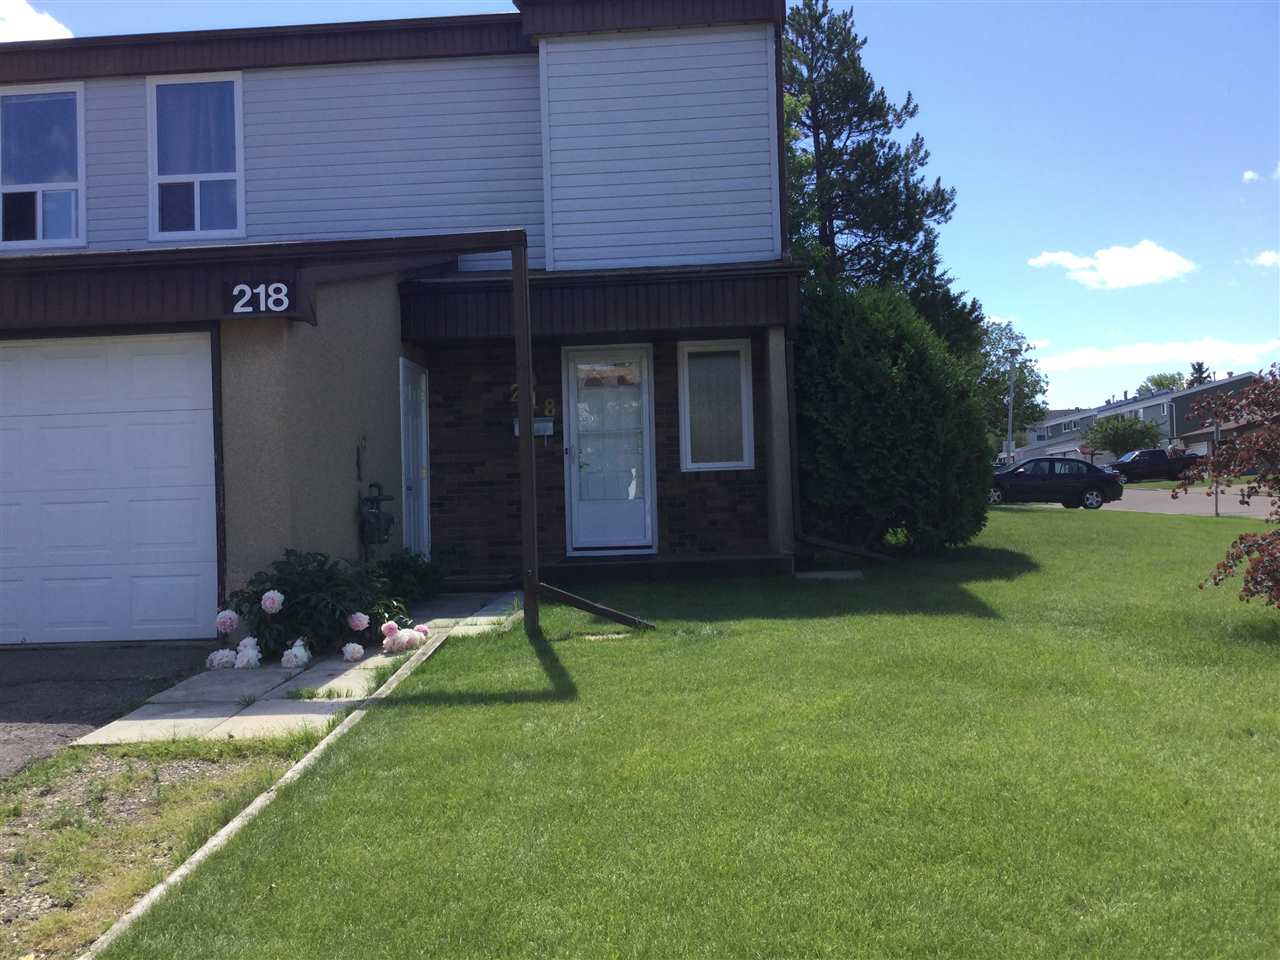 Renovated End/Corner unit featuring, attached Garage with tons of storage, 3 bedrooms, 1 and half baths and Fully Finished Basement! Including a High Efficiency Furnace, all New Vinyl Windows, Slate Flooring, New White Shaker Kitchen Cabinets with Soft Close Doors, Ceramic Backsplash, Built in Eating Bar and Pantry, Open Kitchen Concept to Living & Dining room, New Sliding Doors to Deck and New Fully Fenced Yard!! Gorgeous Fully Renovated Bathrooms, 5 Piece Main Bath comes with Double Sinks, bath/shower! Also includes Fresh Carpets, Paint , Baseboards, Lighting, upgraded Hardware & Doors!! Upstairs includes 3 good sized bedrooms and a 5 piece bath. The Master comes with huge New Windows! Tons of additional living space in the Fully Finished basement with large family room & Entertainment room. The single attached garage has an additional Loft with ample storage. Close to Parks, all levels of Schools, Shopping and Transportation.